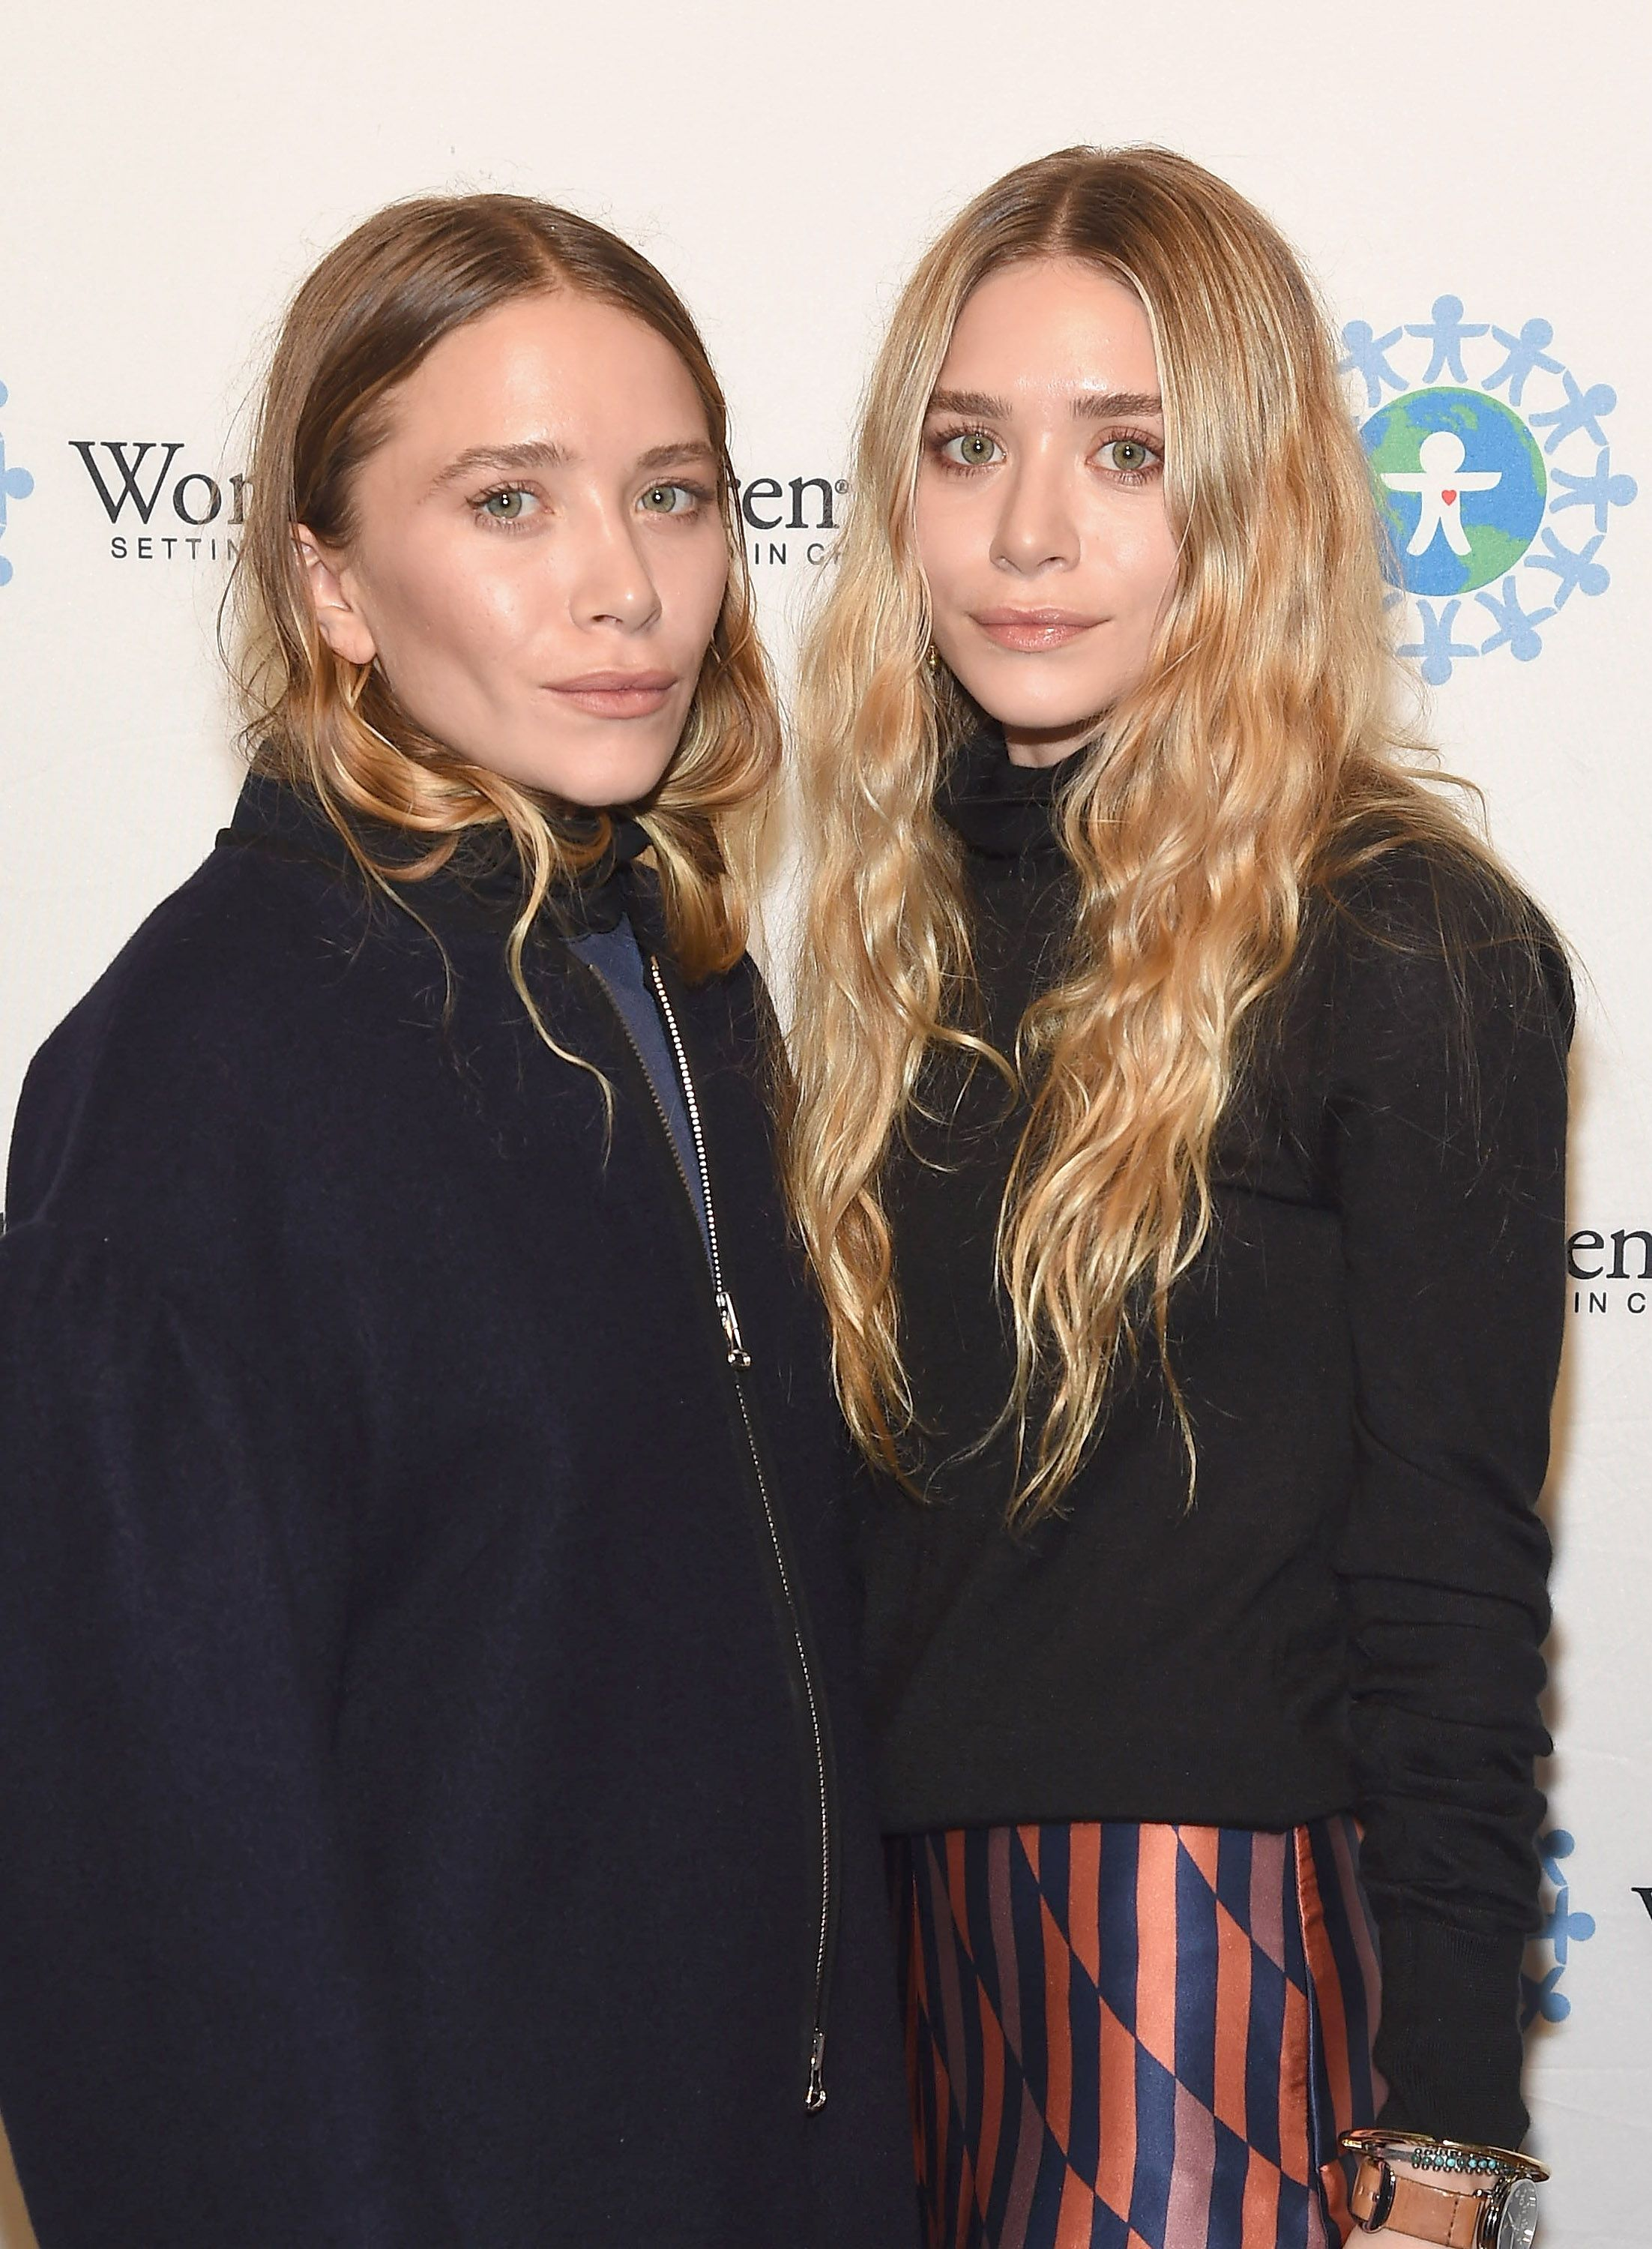 22 Surprising Celebrity Twins - Celebrities Who Have a Twin Brother